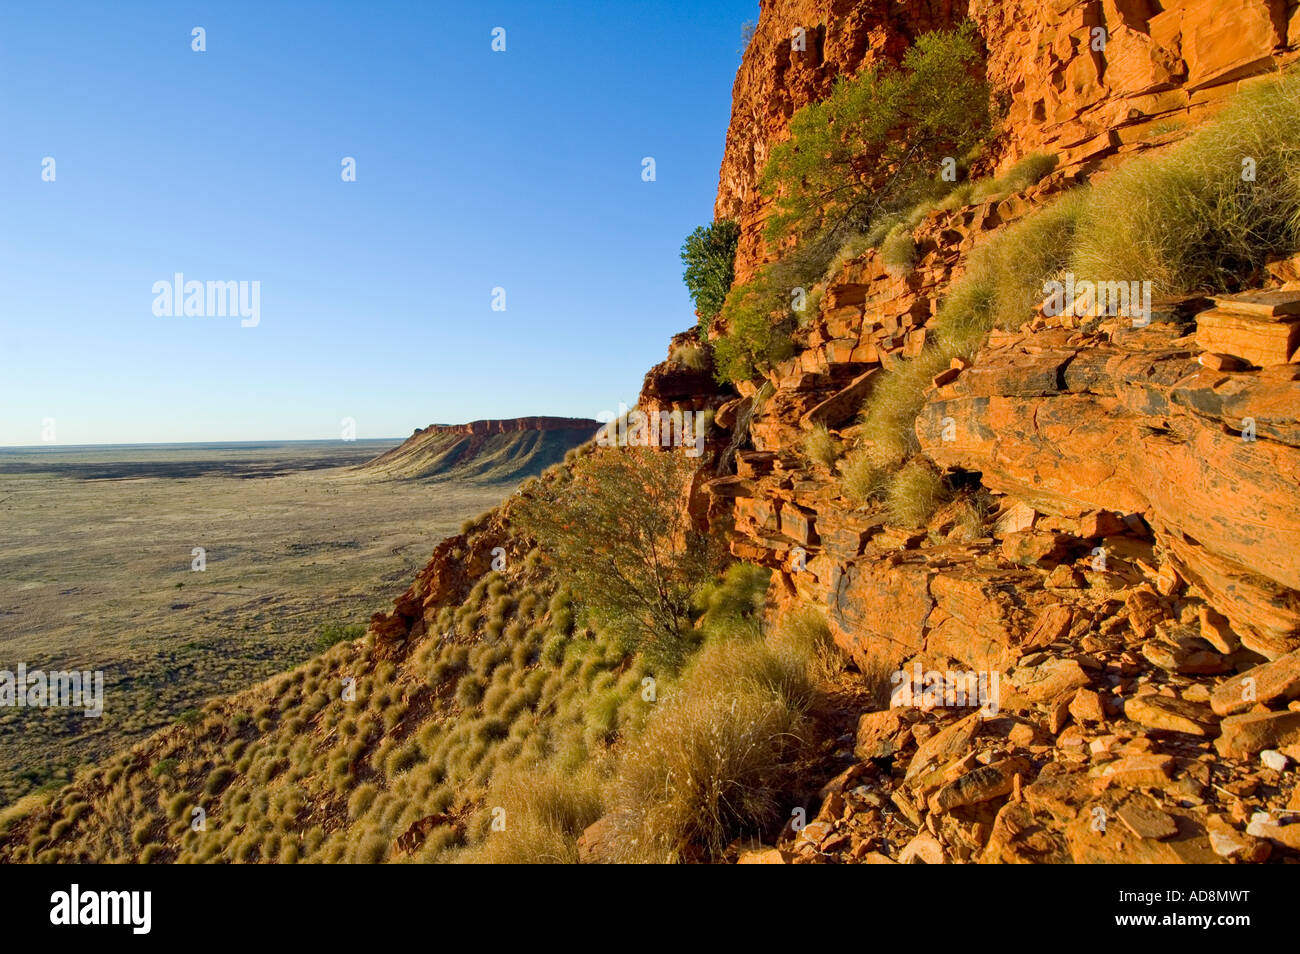 Evening light on the Breadon Hills on the Canning Stock Route Western Australia - Stock Image